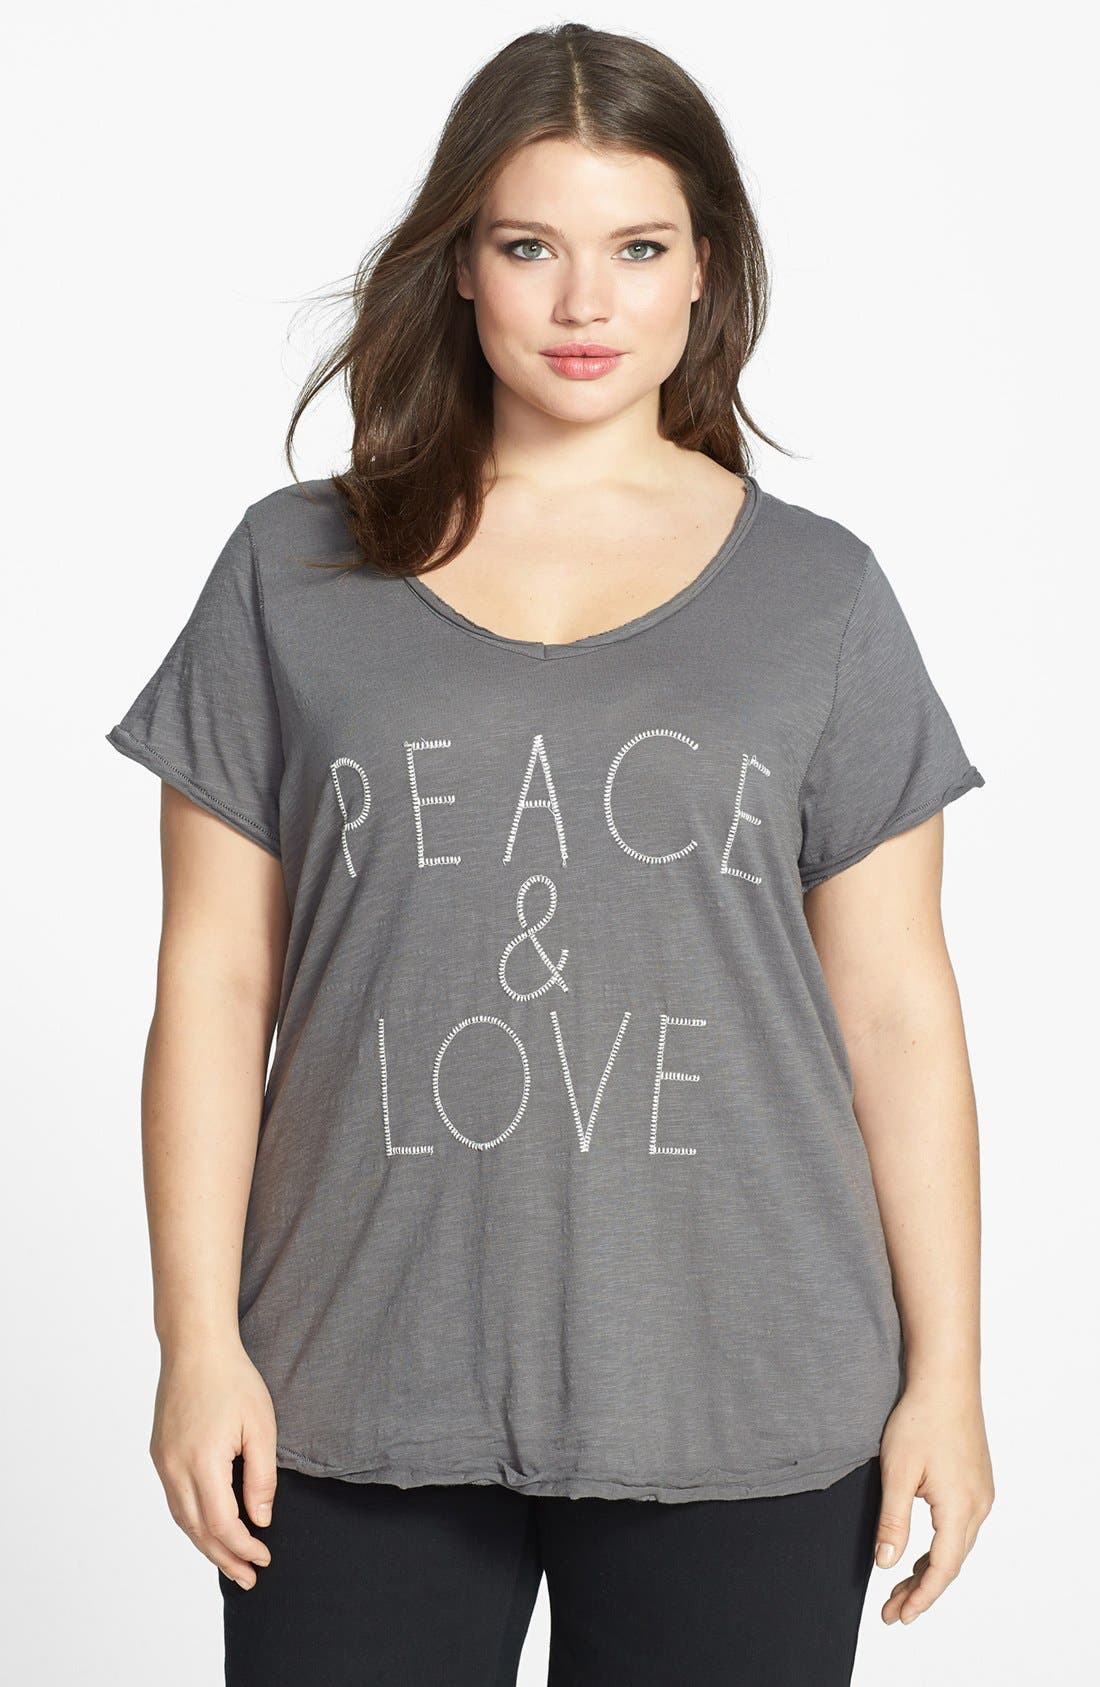 Alternate Image 1 Selected - Lucky Brand 'Peace & Love' Tee (Plus Size)